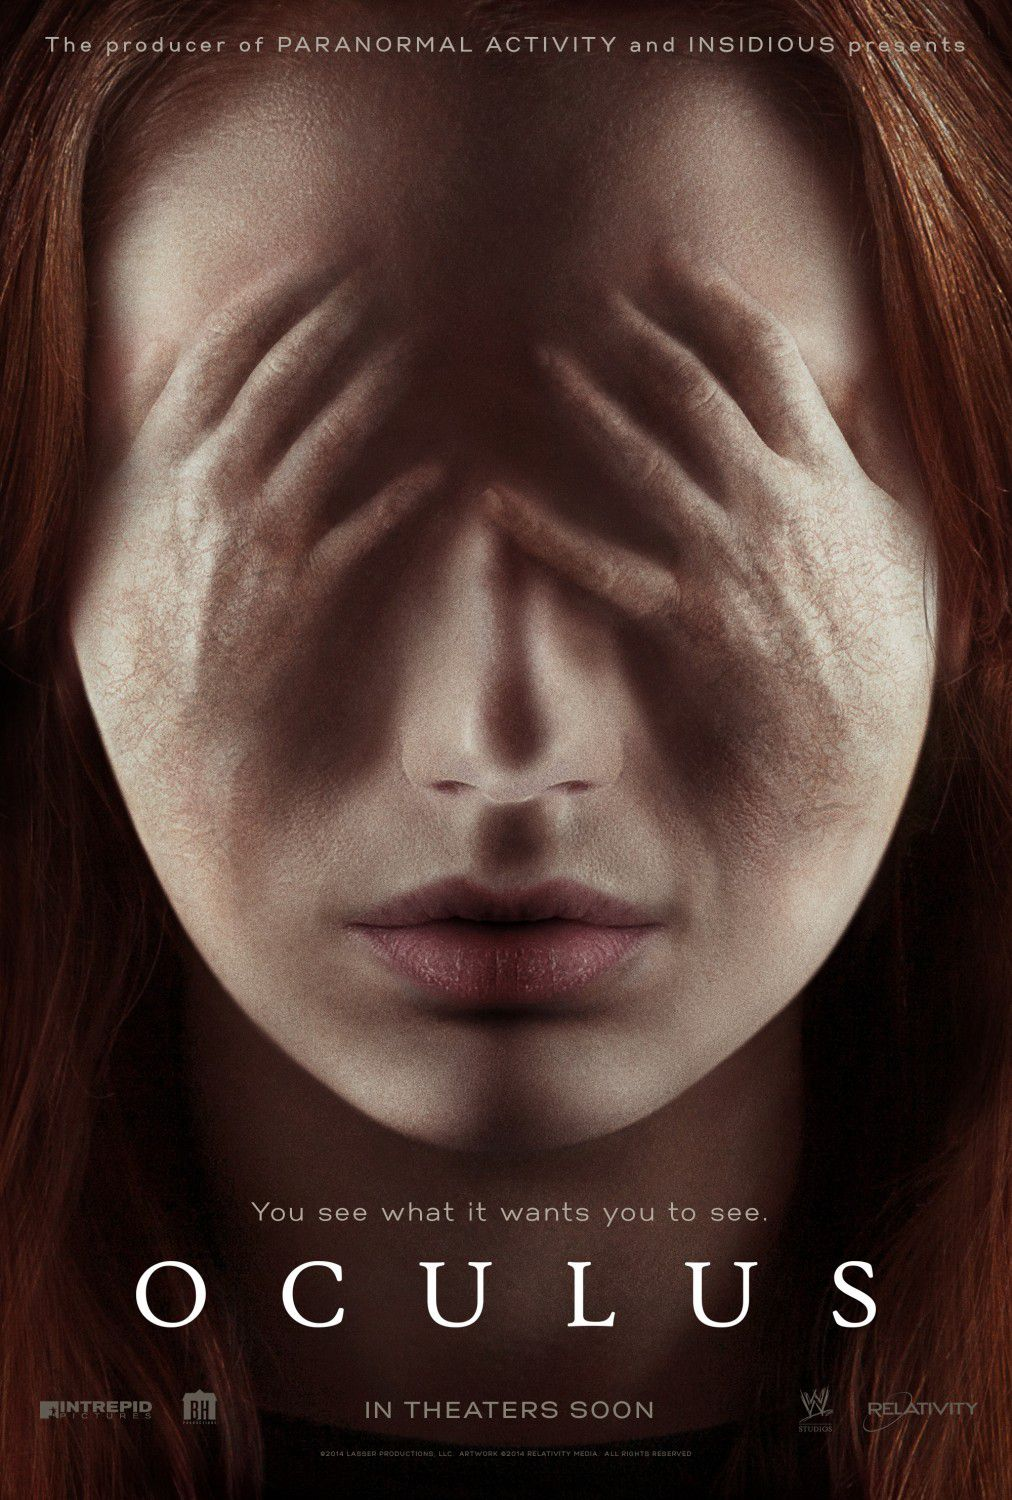 Oculus - hand face film poster